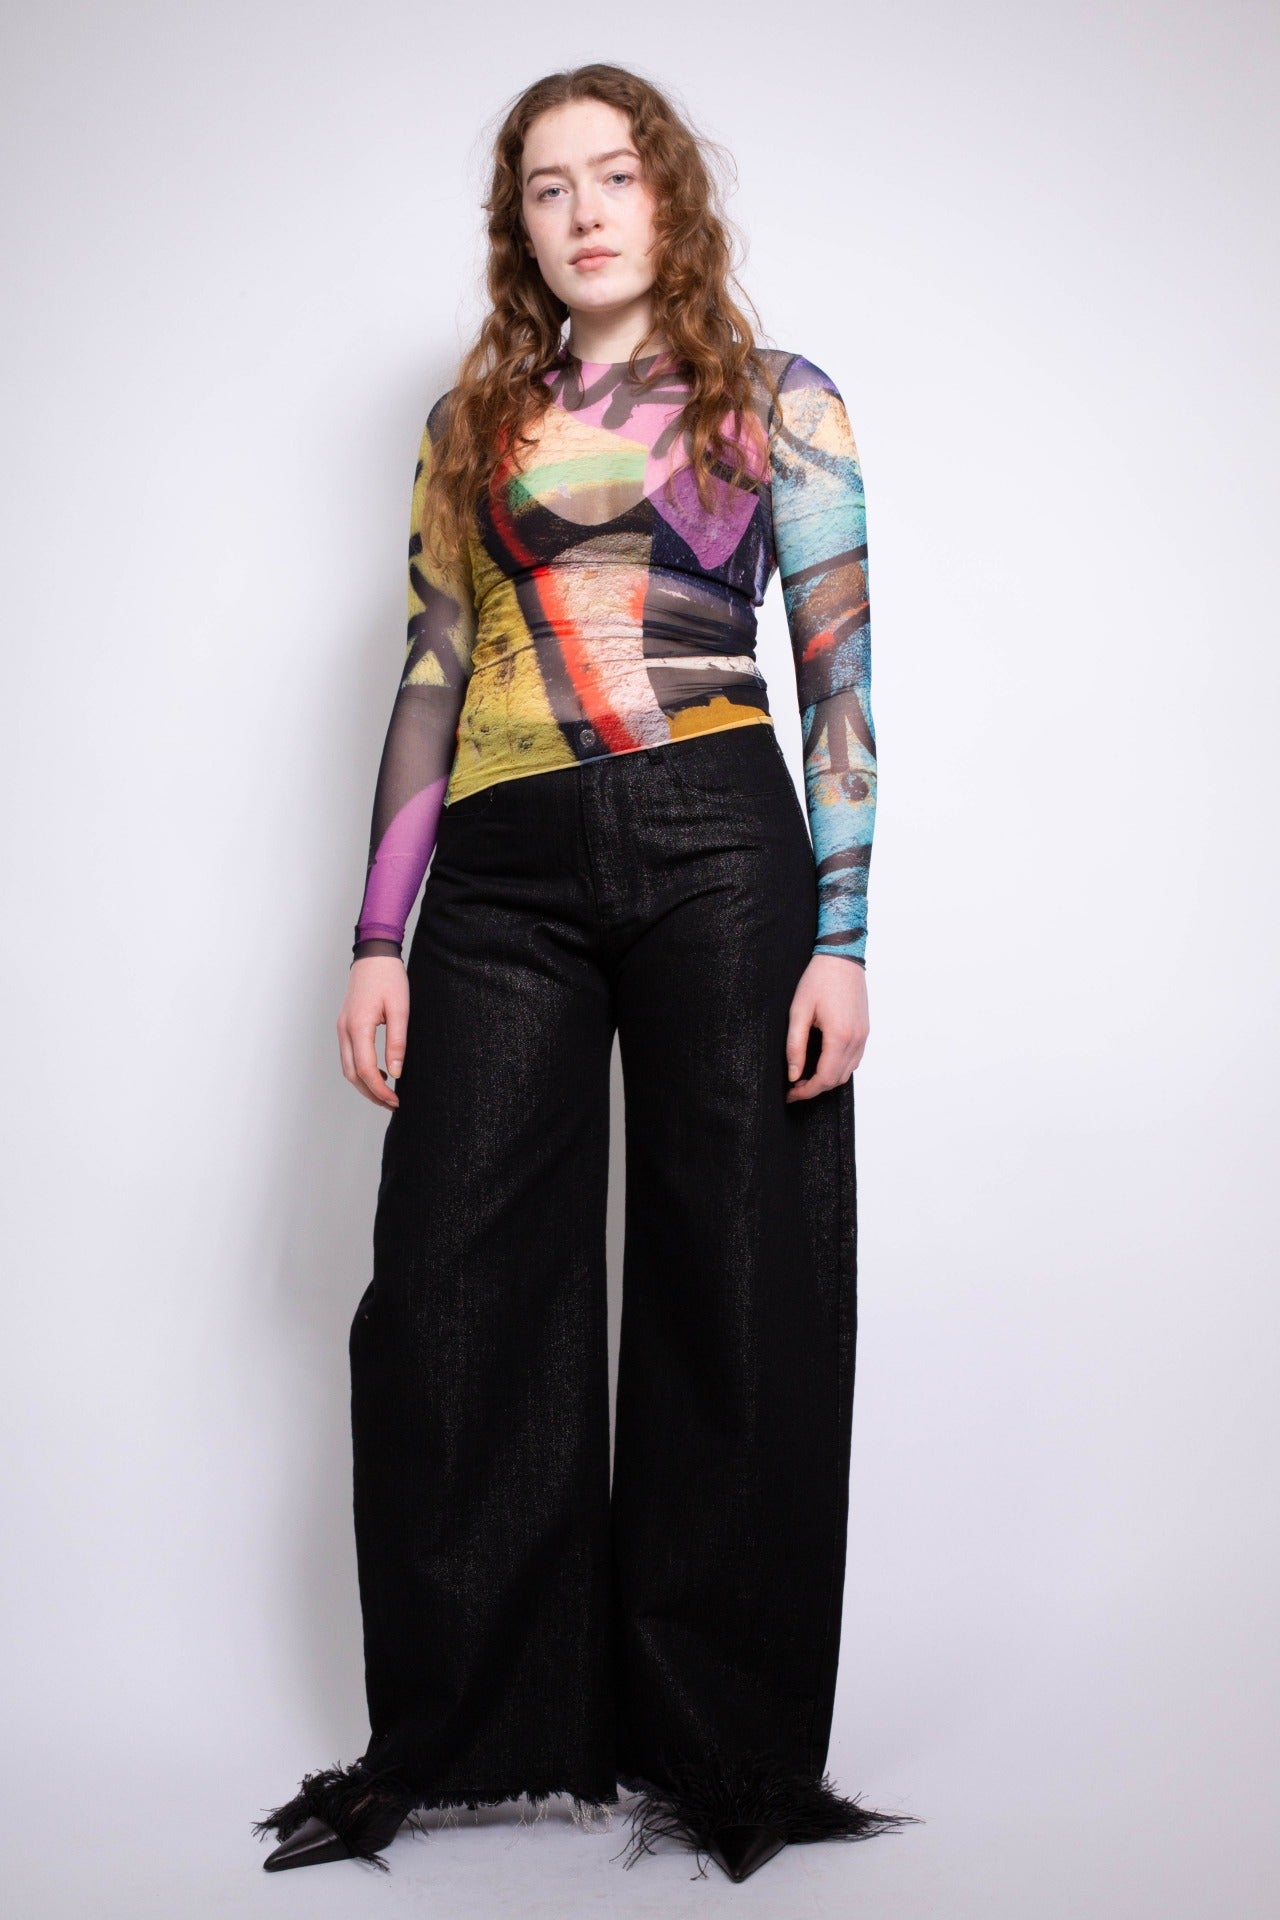 LONG SLEEVE MESH TOP IN GRAFFITI PRINT